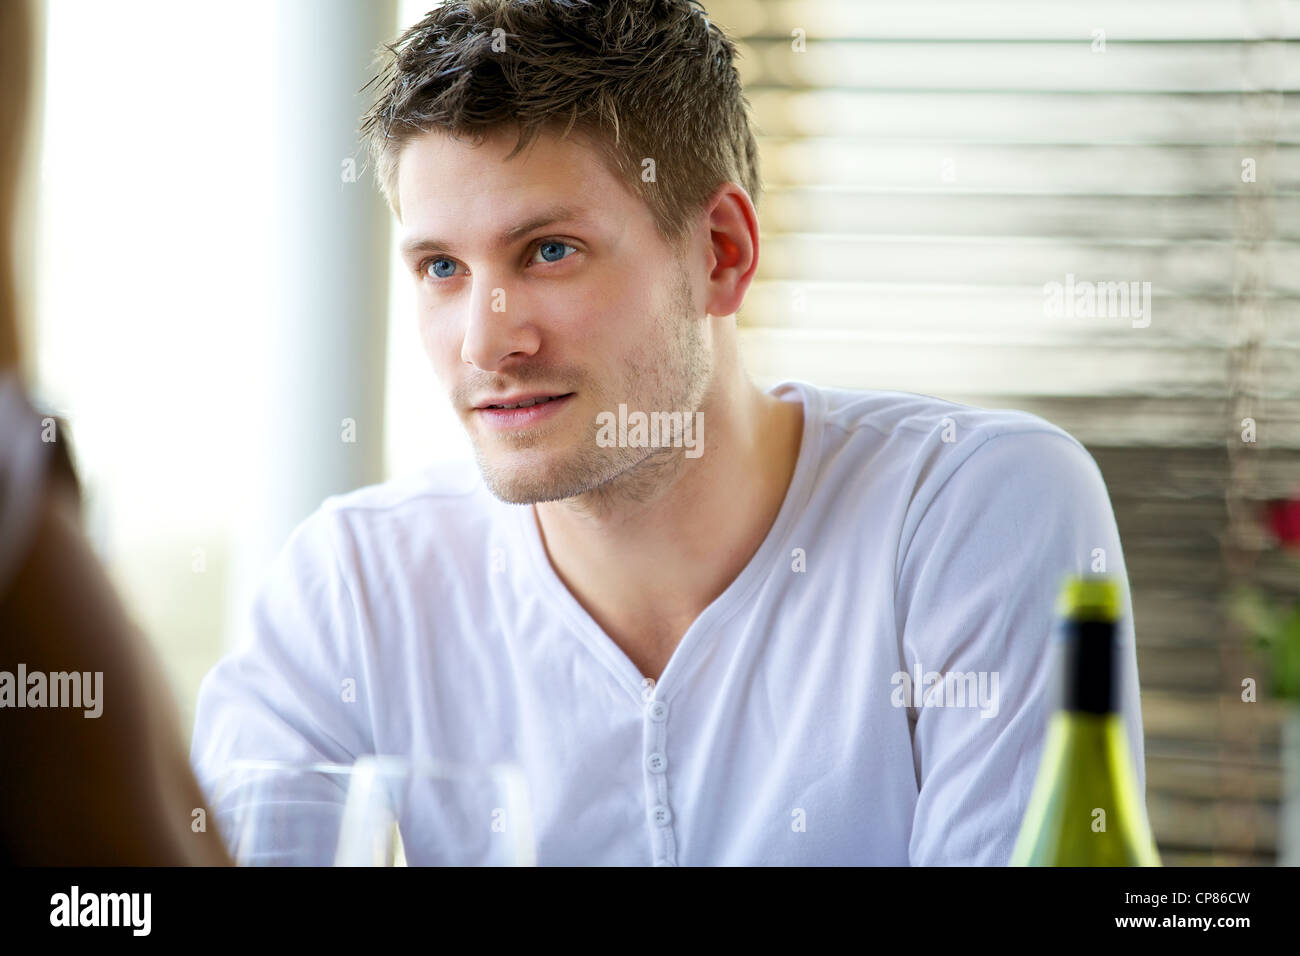 Portrait of an attractive guy seriously listening to someone Stock Photo